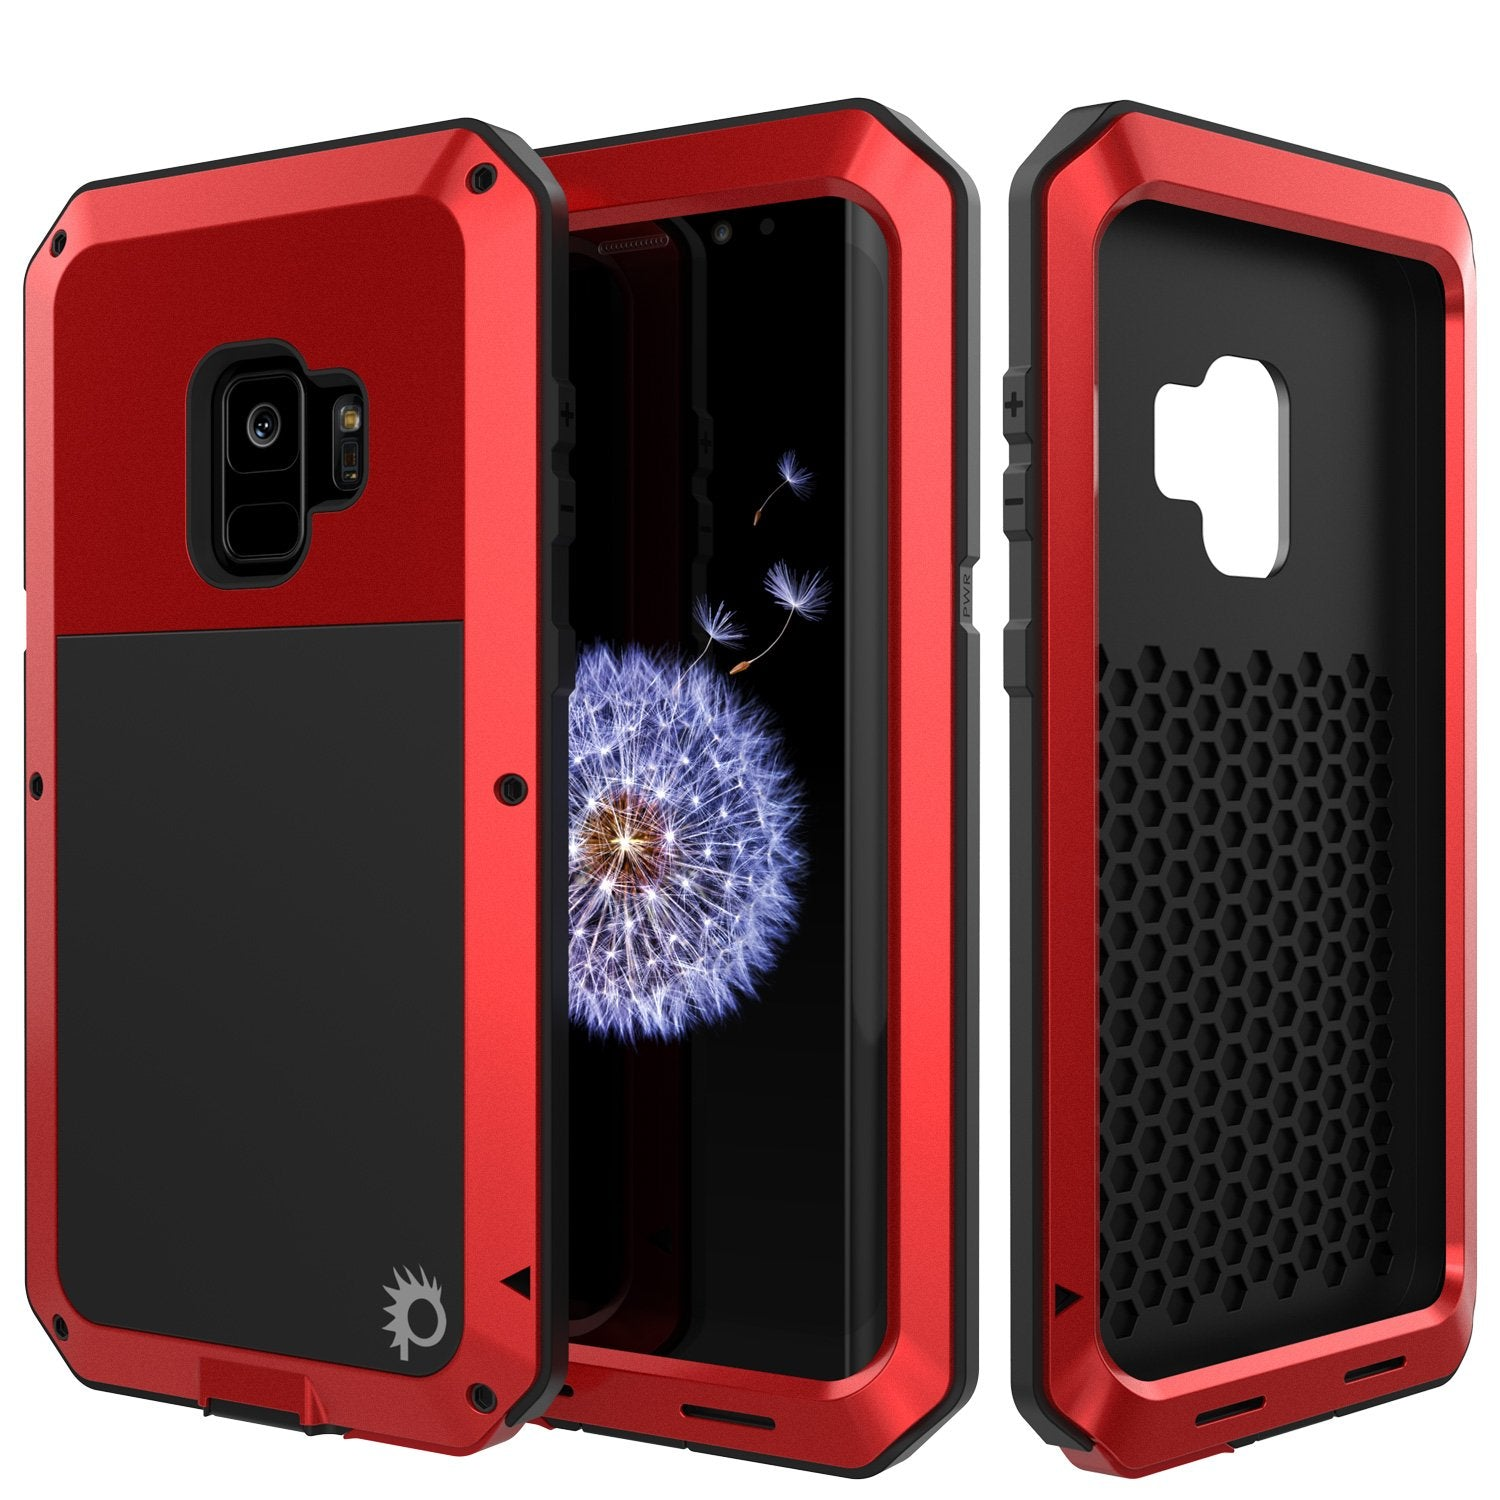 Galaxy S9 Metal Case, Heavy Duty Military Grade Rugged case [Red]